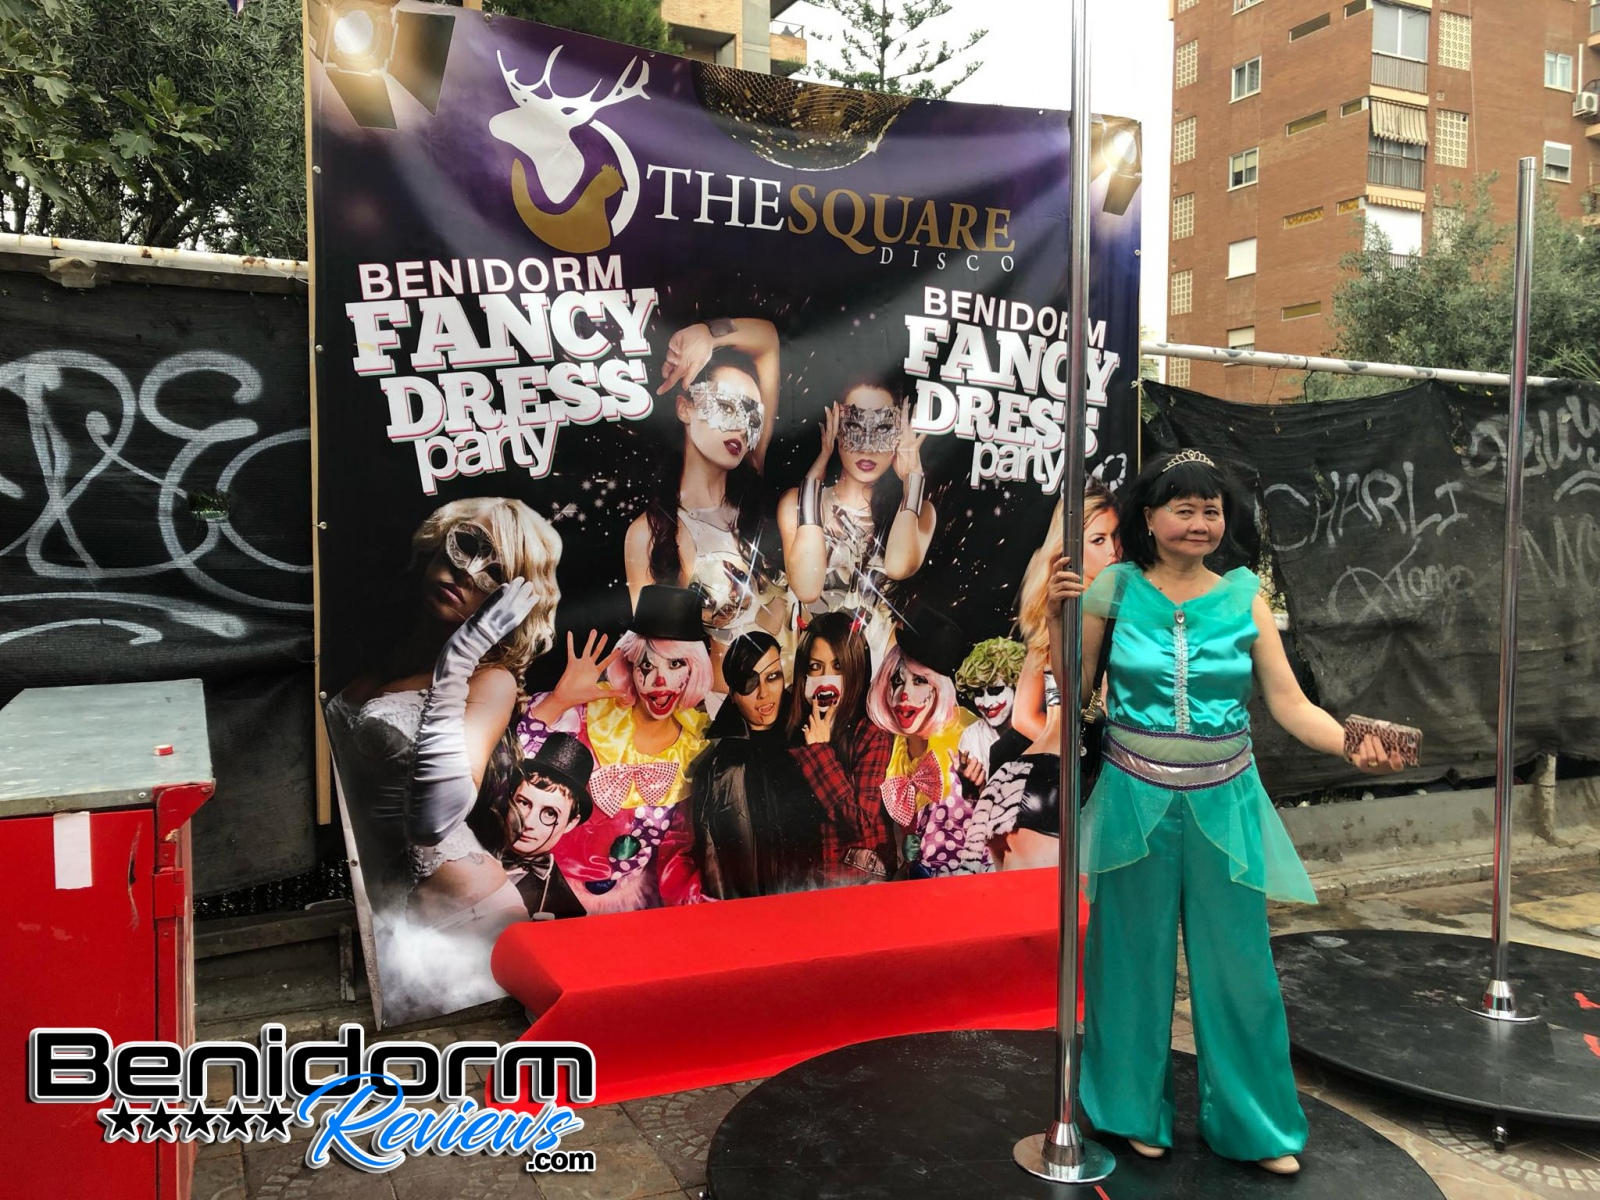 Benidorm-Fiestas-2019-Fancy-Dress-16